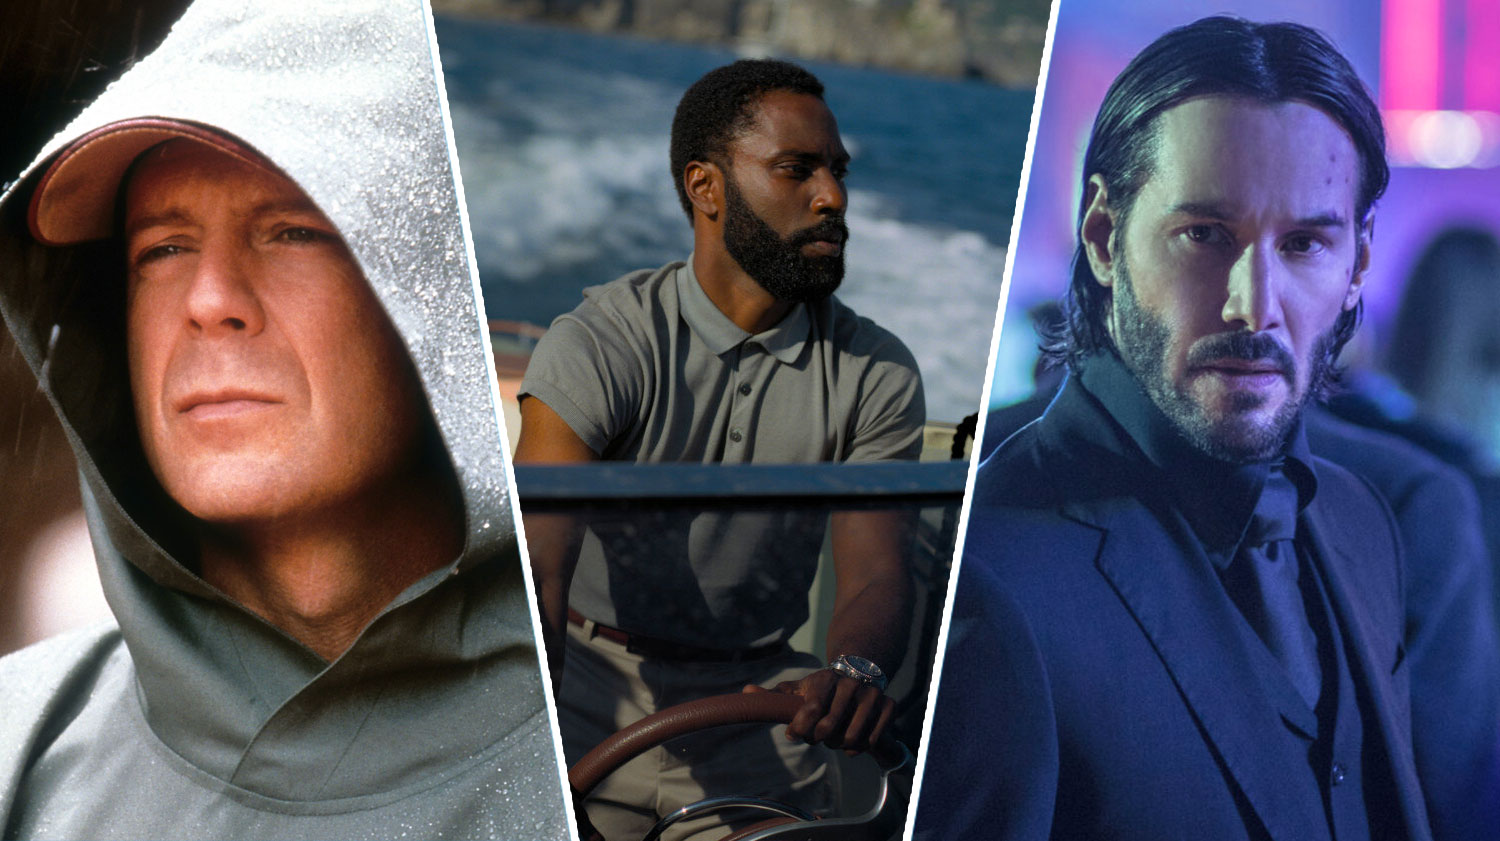 'Tenet', 'Unbreakable', 'John Wick: Chapter Two': The films to stream this weekend